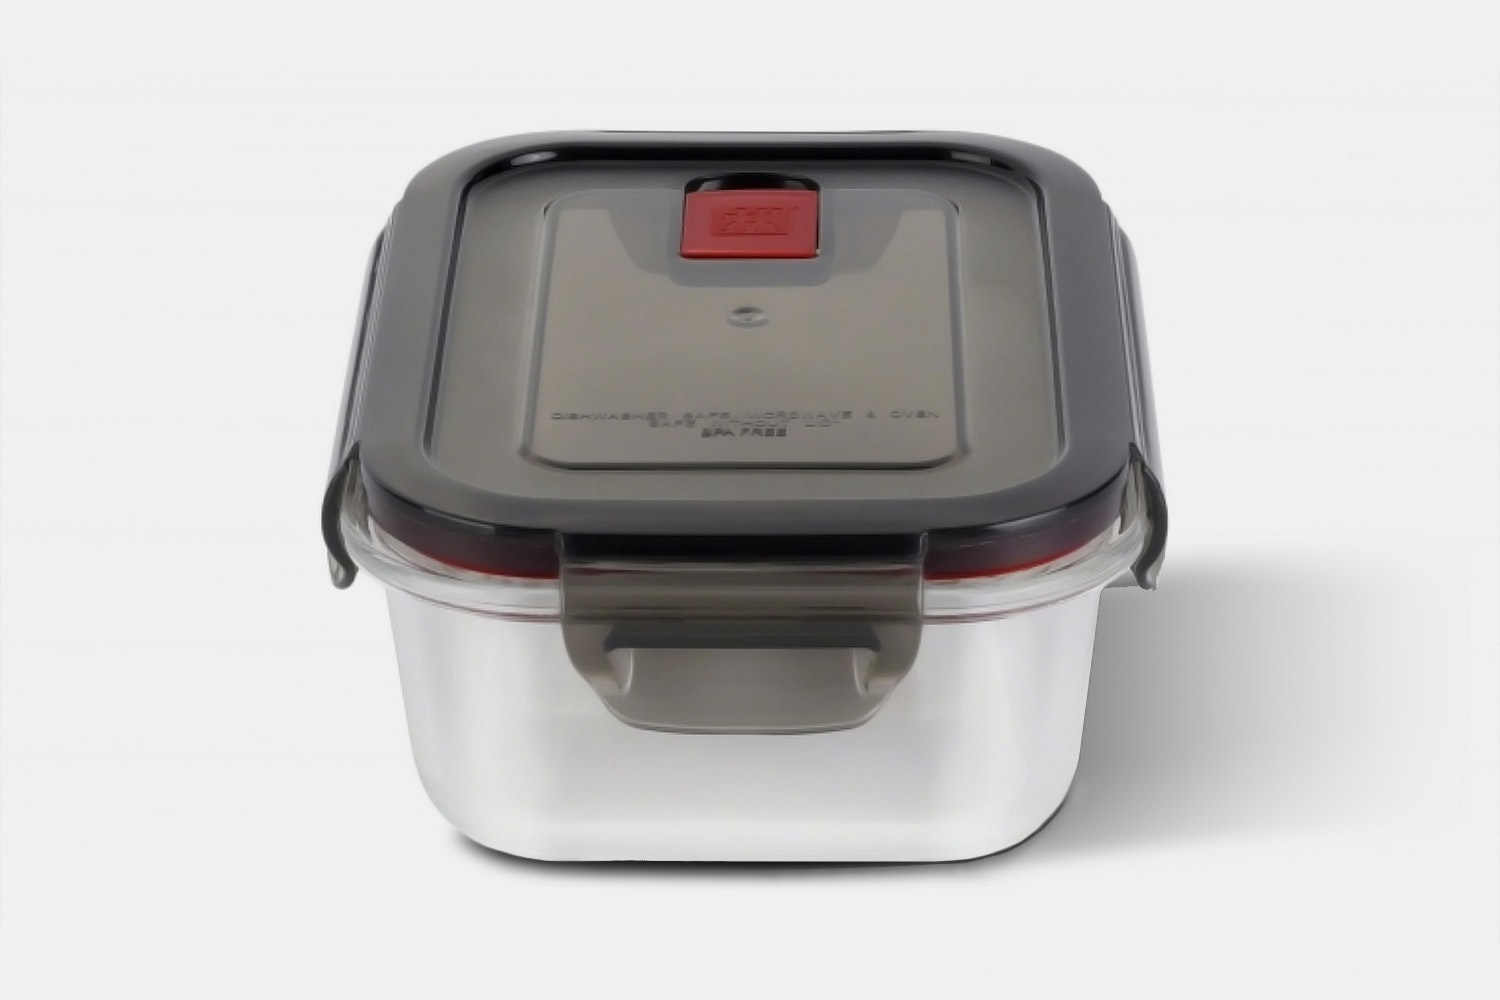 Zwilling Gusto Glass Storage Containers